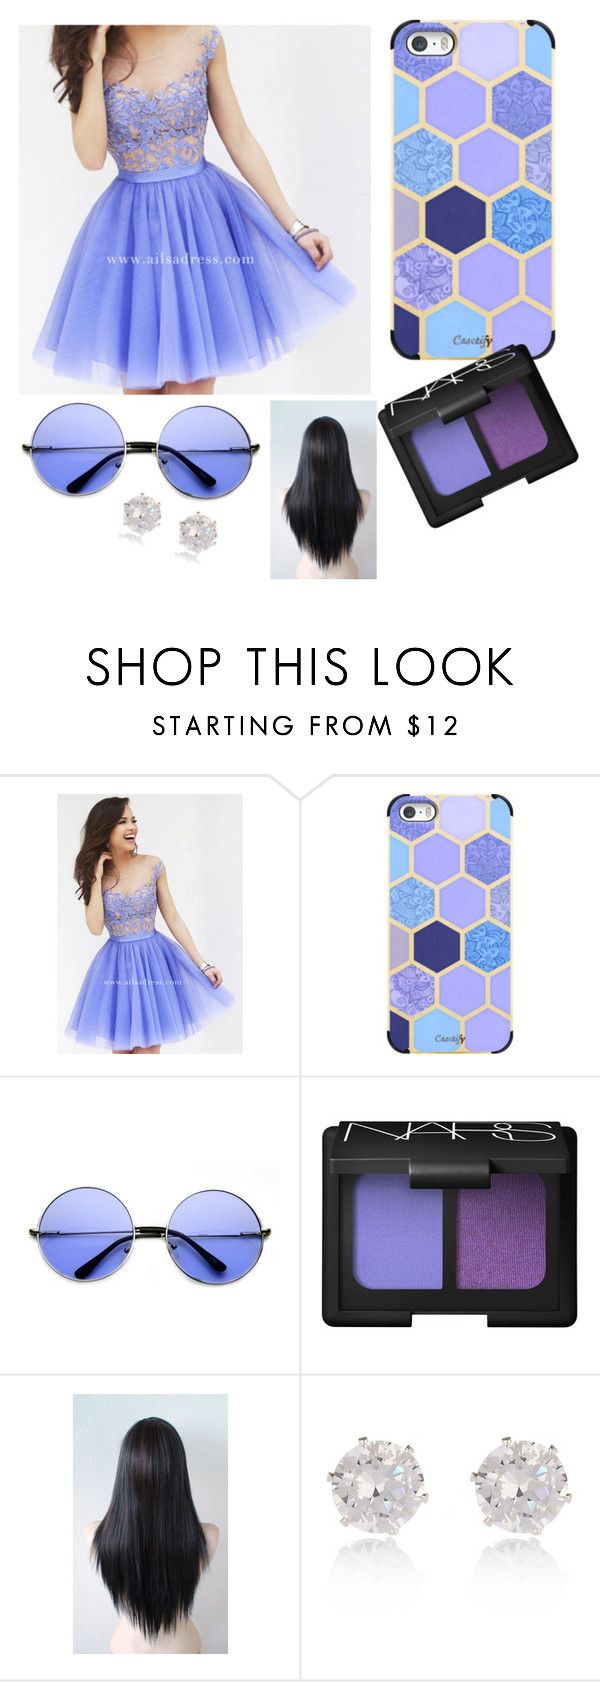 """""""lavender lover"""" by kmdavis202 ❤ liked on Polyvore featuring Casetify, NARS Cosmetics, River Island, women's clothing, women, female, woman, misses and juniors"""